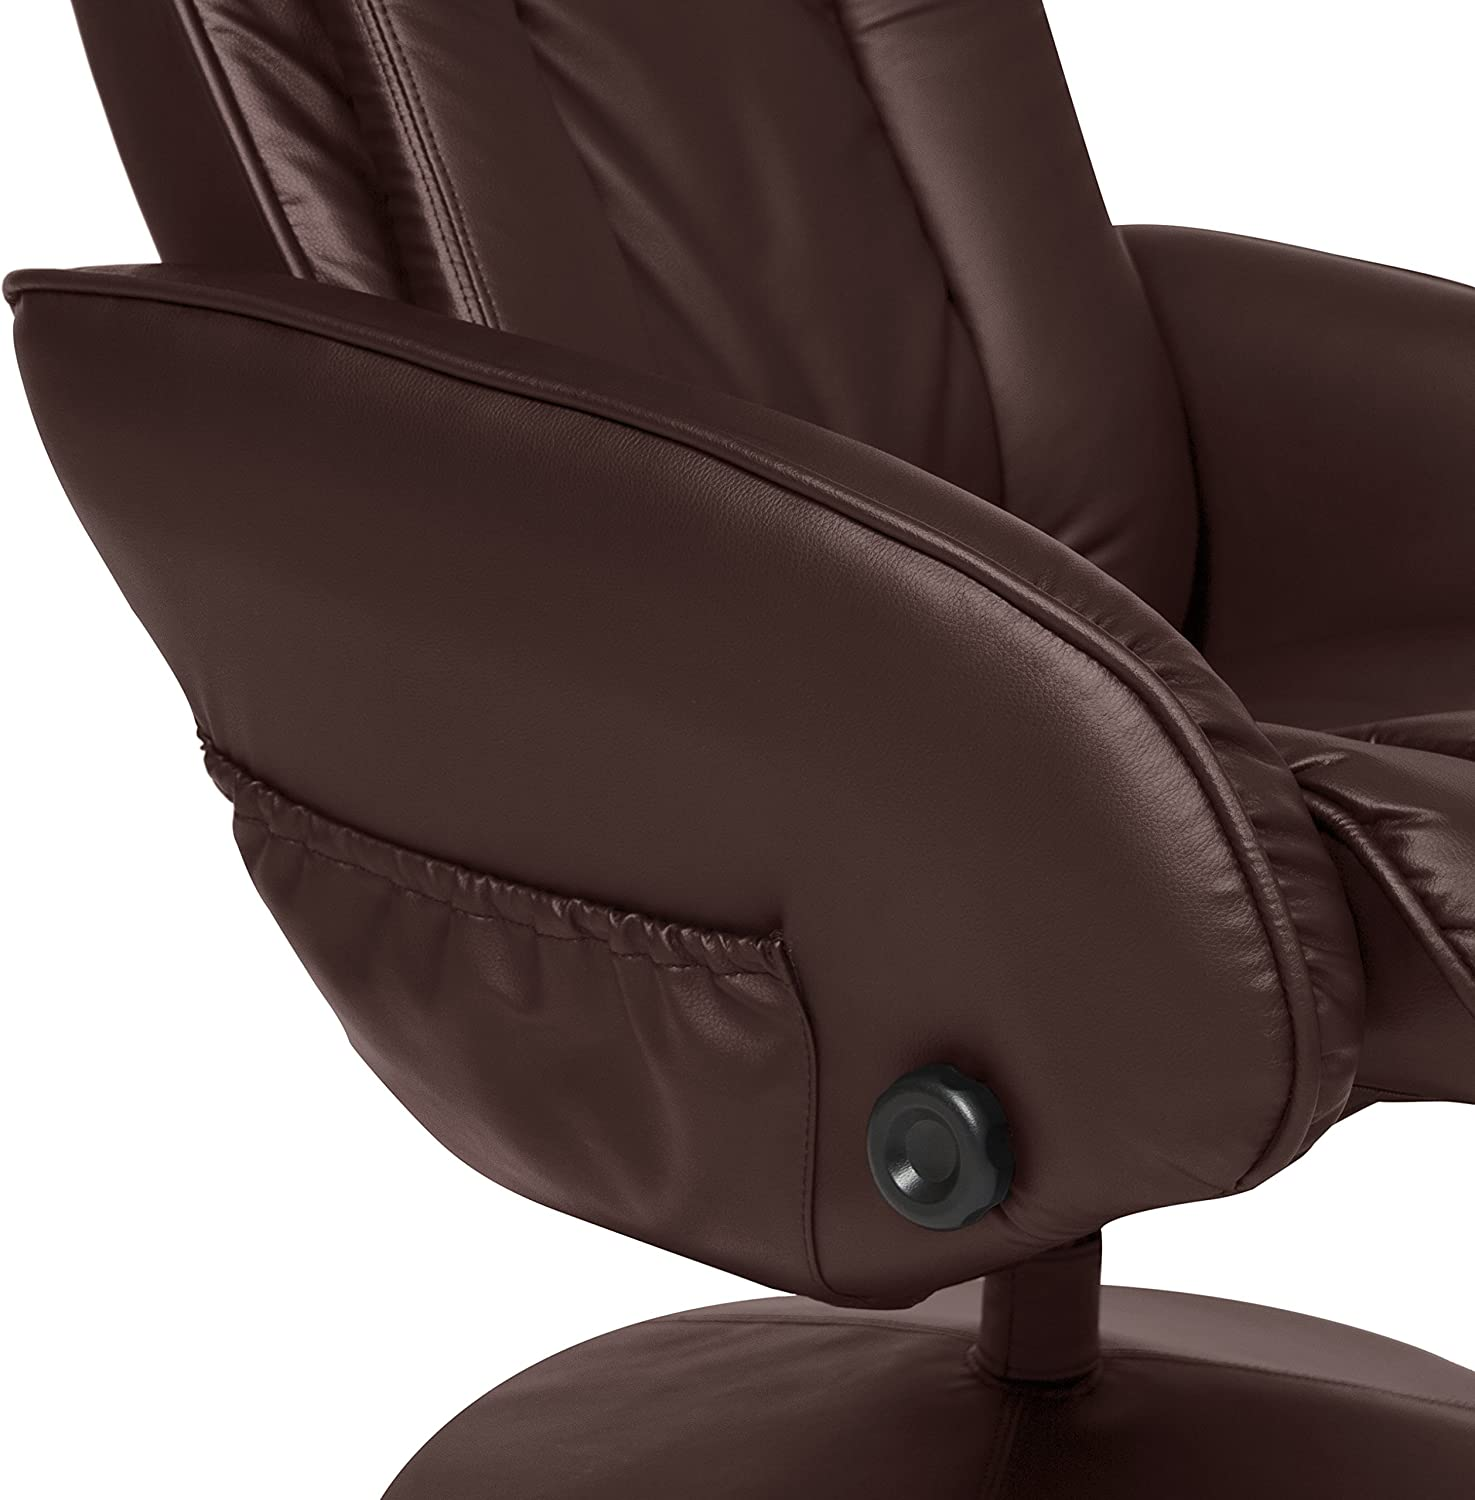 Best Choice Products Recliner Massage Chair side pocket